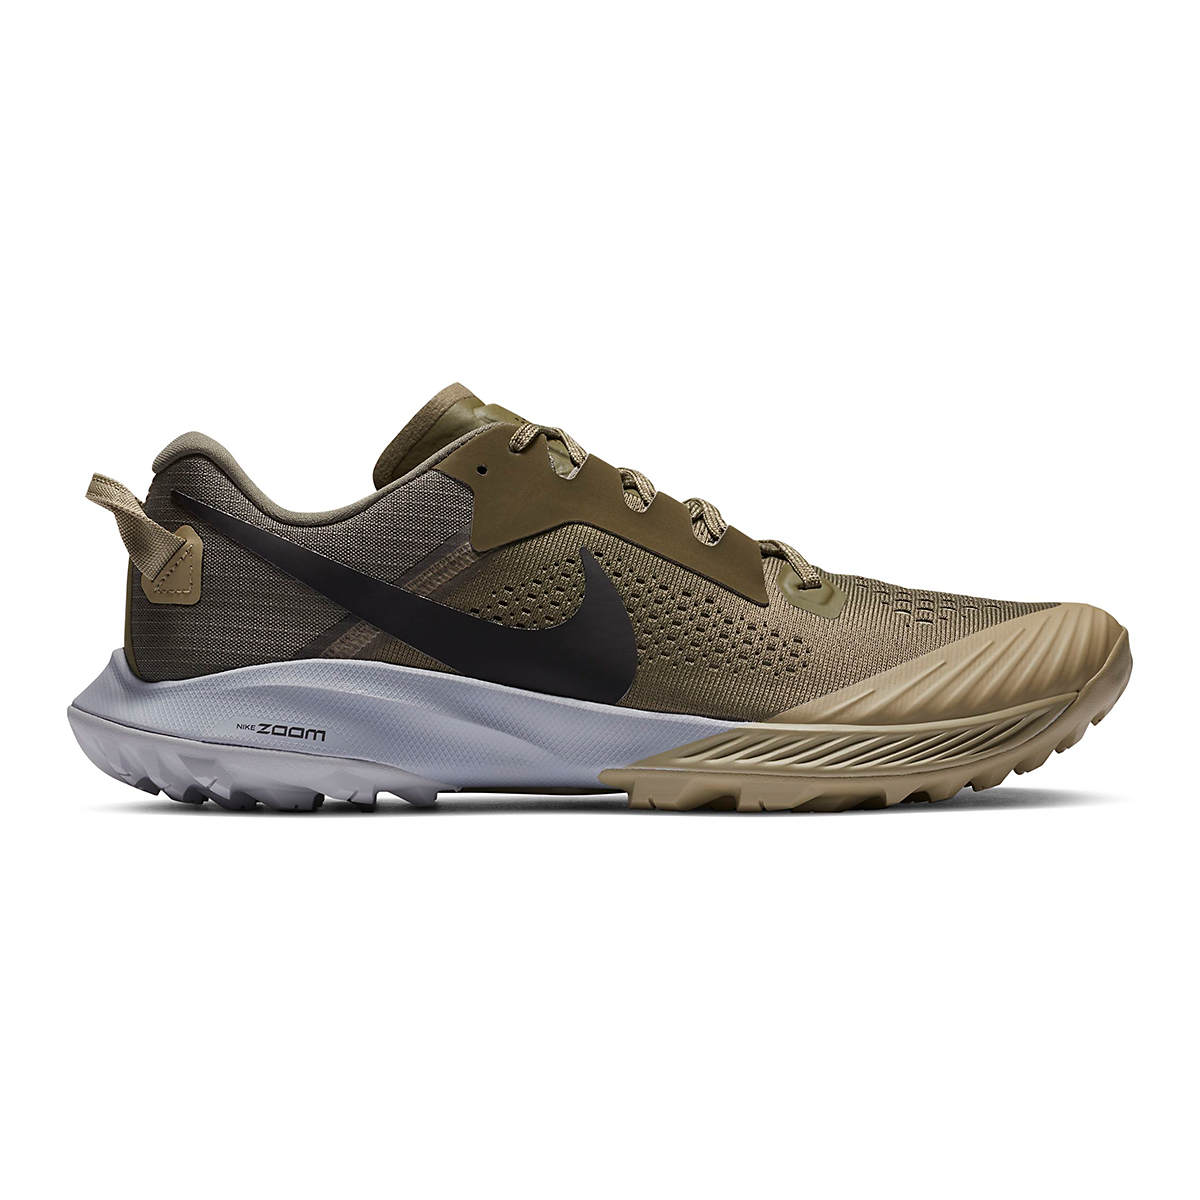 photo of the nike terra kiger 6 in olive